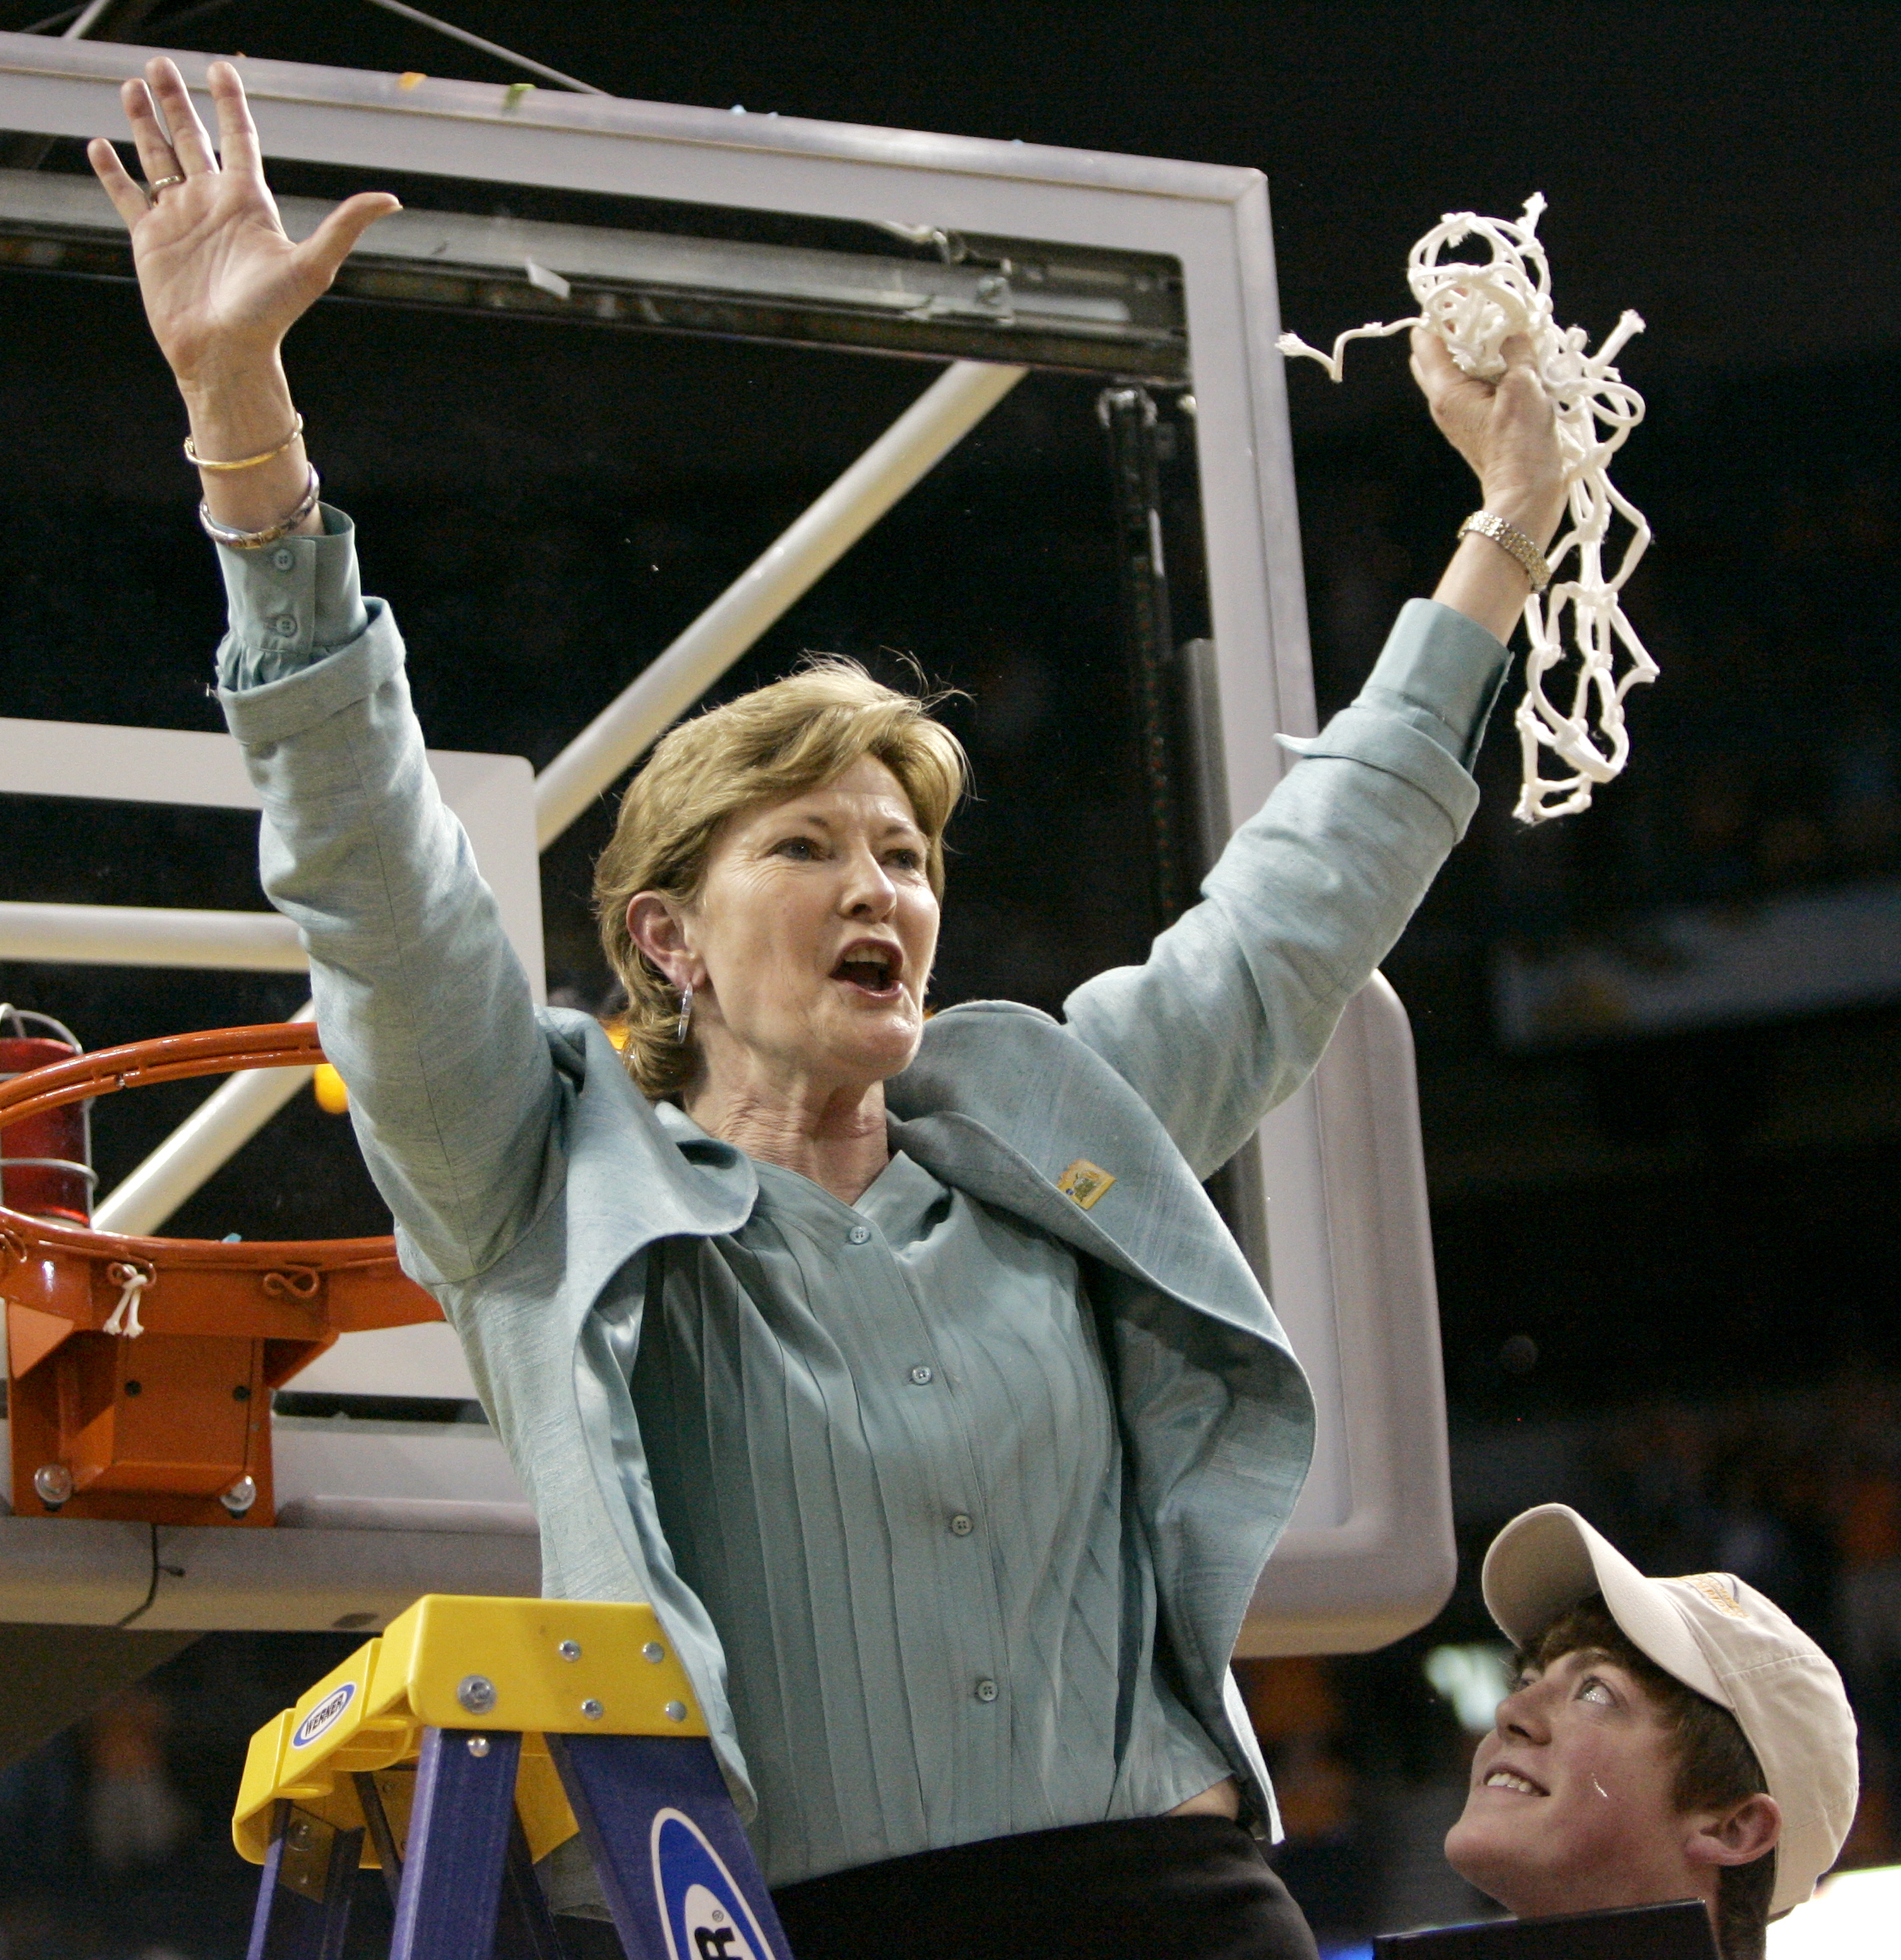 FILE - In this April 8, 2008, file photo, Tennessee coach Pat Summitt holds up the net as her son, Tyler, looks on after Tennessee beat Stanford 64-48 to win its eighth national women's basketball championship, at the NCAA women's basketball tournament Fi